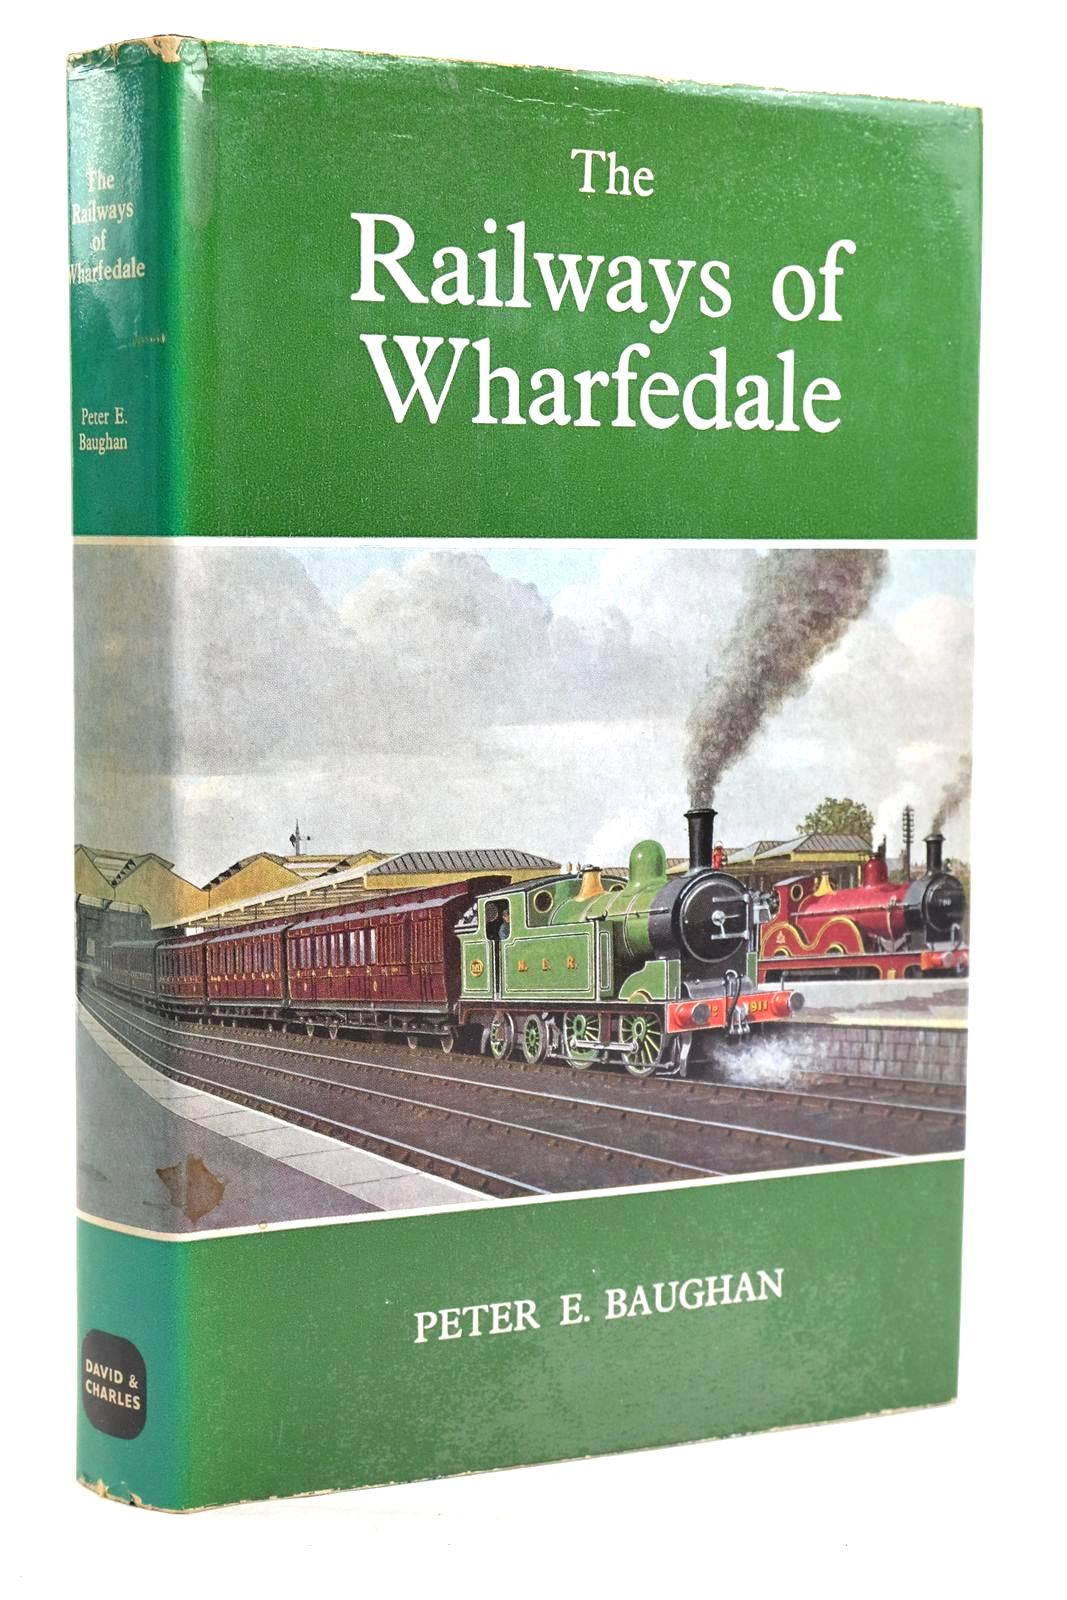 Photo of THE RAILWAYS OF WHARFEDALE written by Baughan, Peter E. published by David & Charles (STOCK CODE: 1319916)  for sale by Stella & Rose's Books